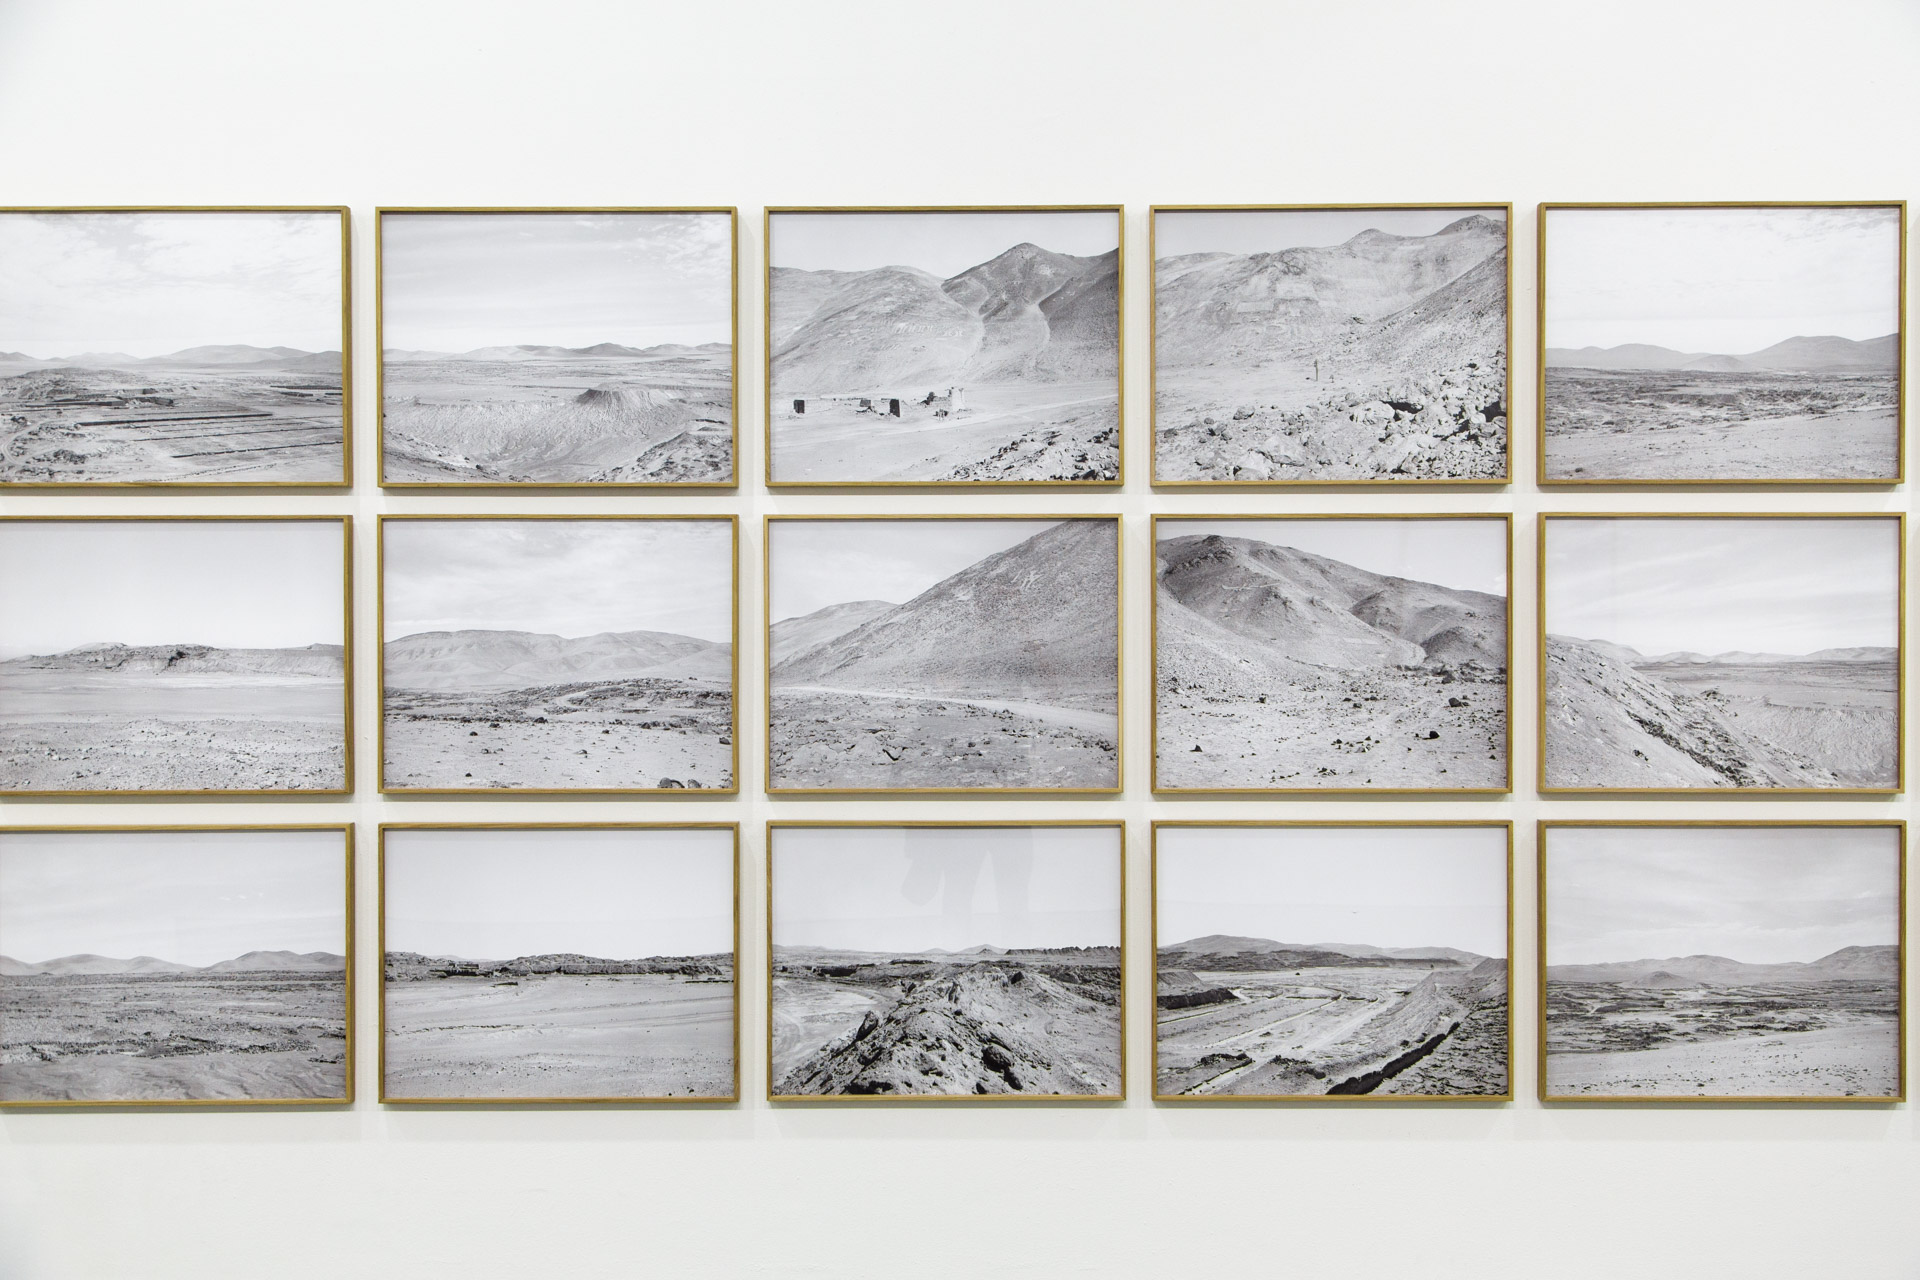 Xavier Ribas's landscape images were arranged in an interesting way; disjointed yet connected.